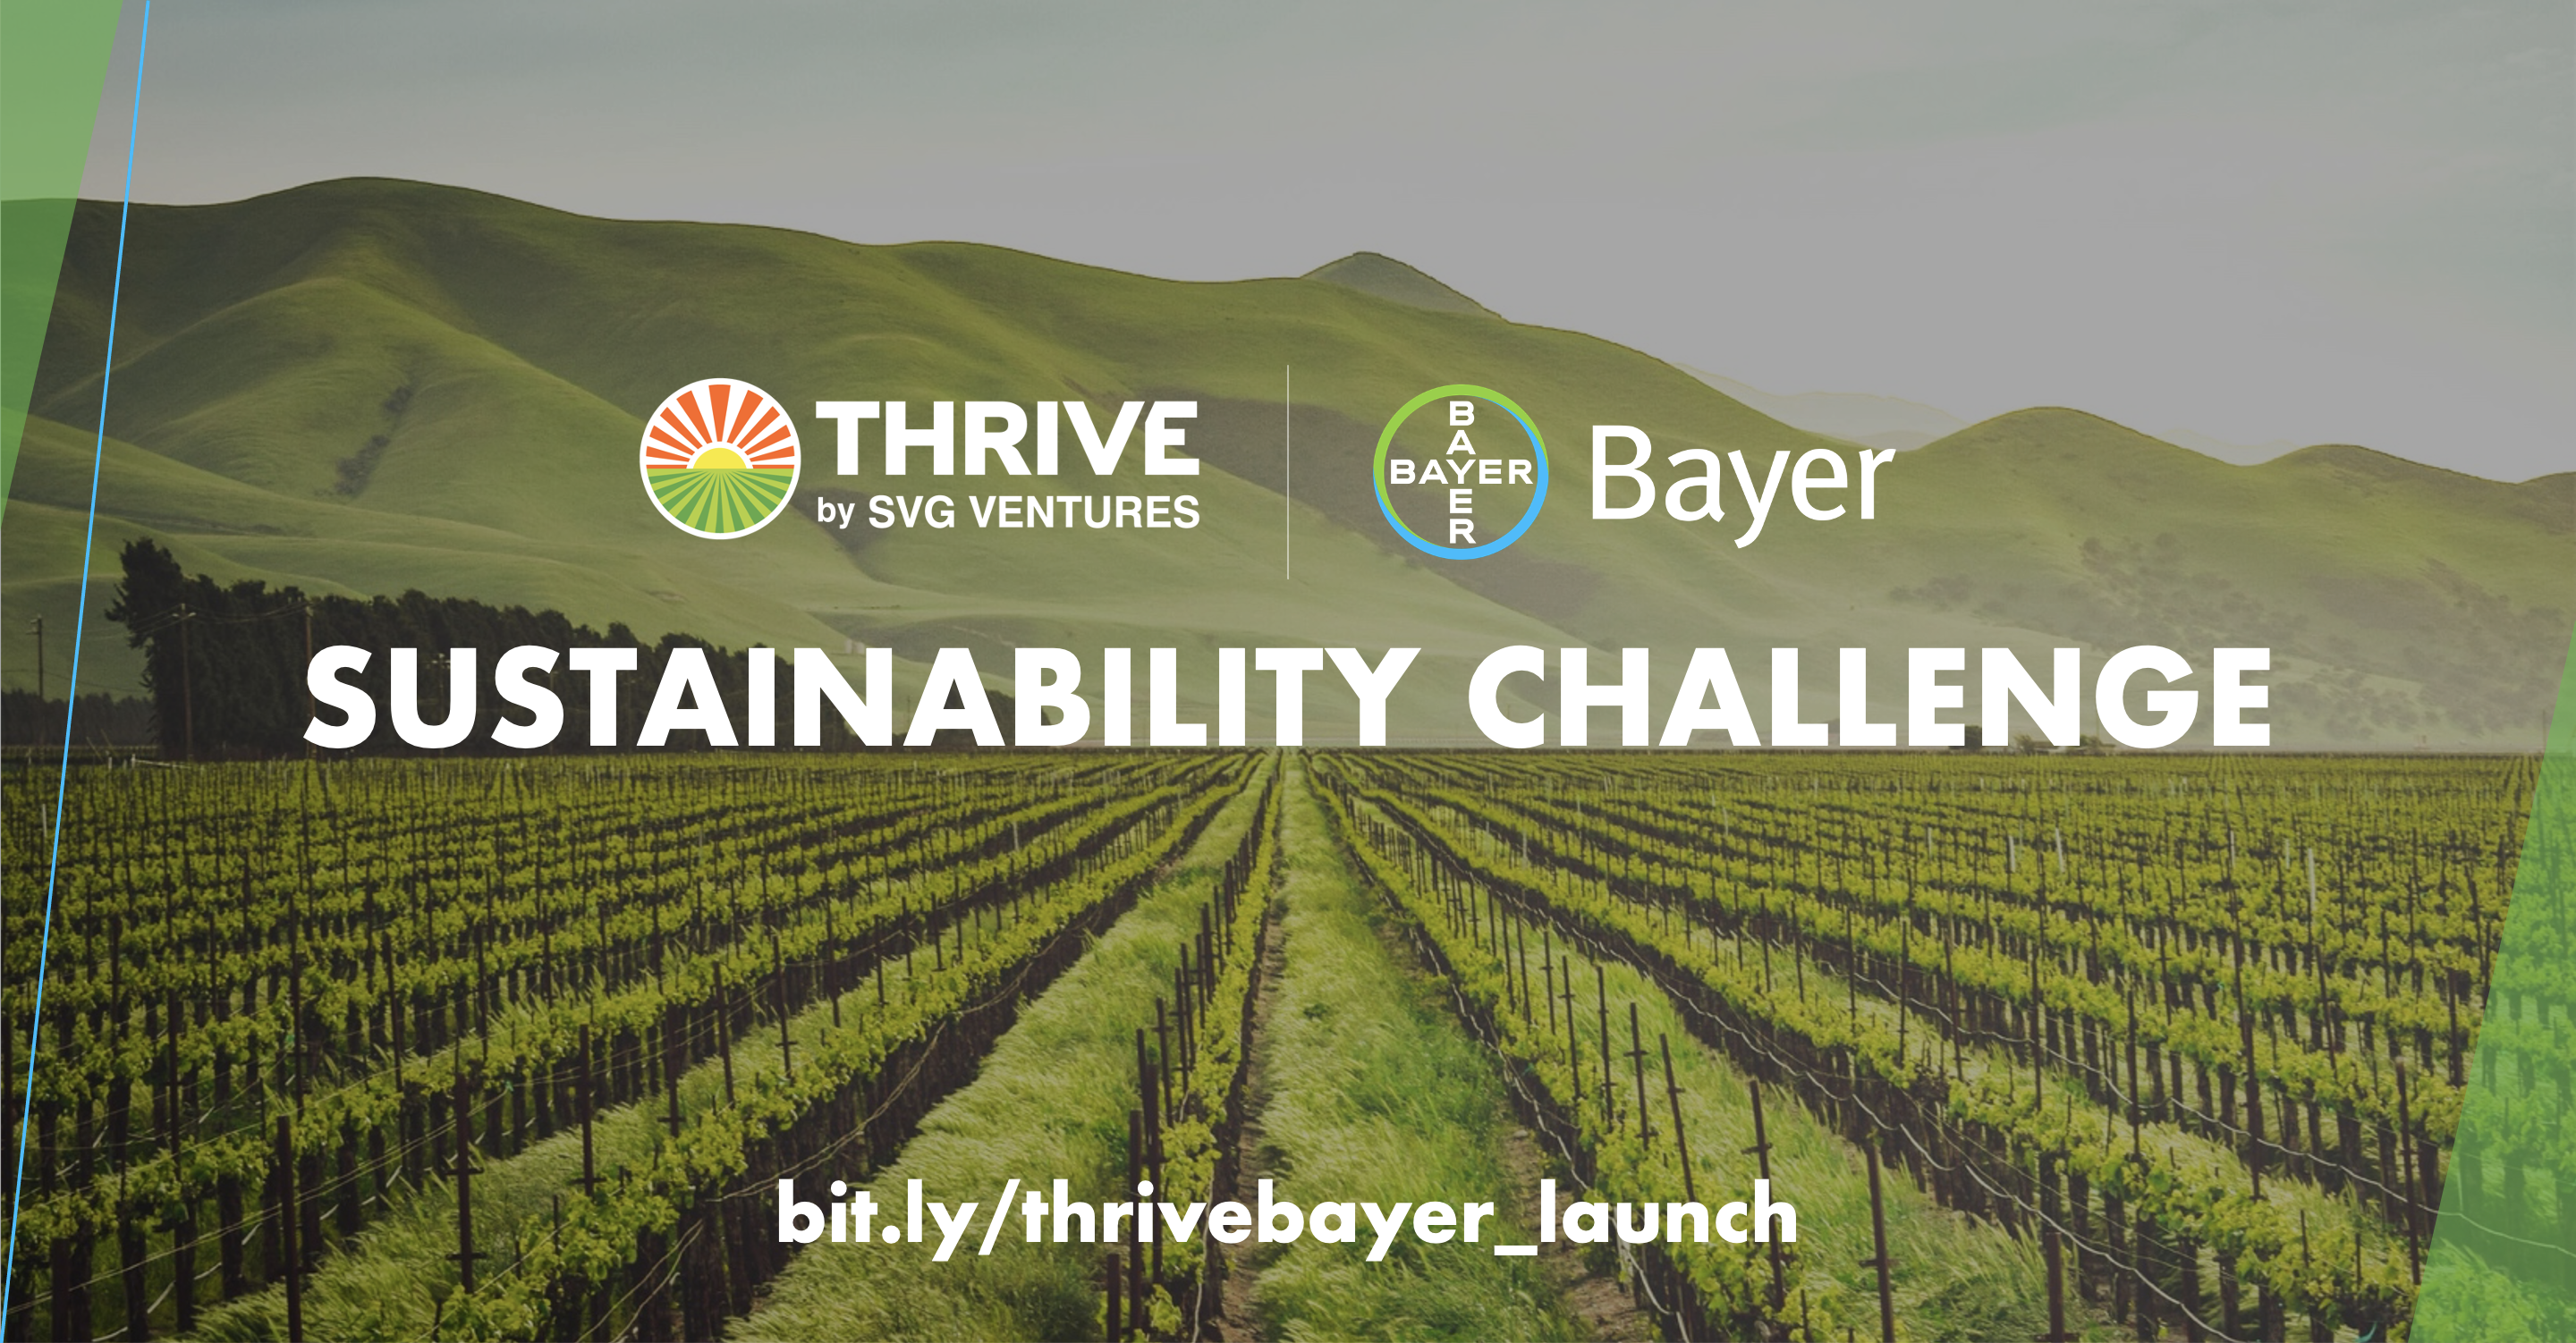 SVG Ventures | THRIVE and Bayer partner to tackle agriculture's grand challenge